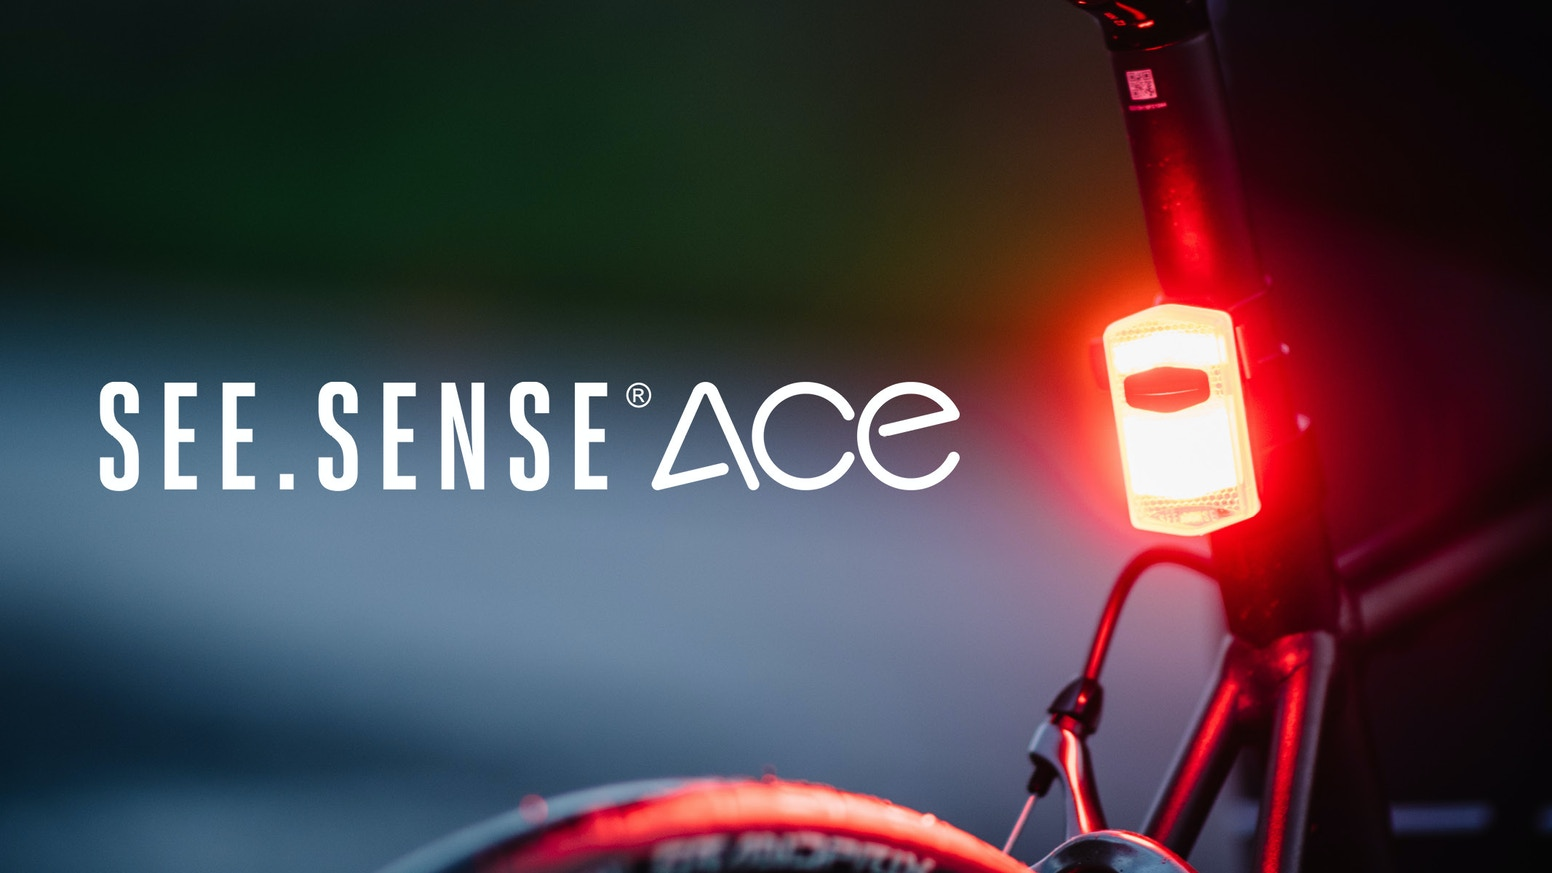 See Sense ACE combines the latest in AI technology with elegant cyclist-led design to make your ride safer and your city smarter.